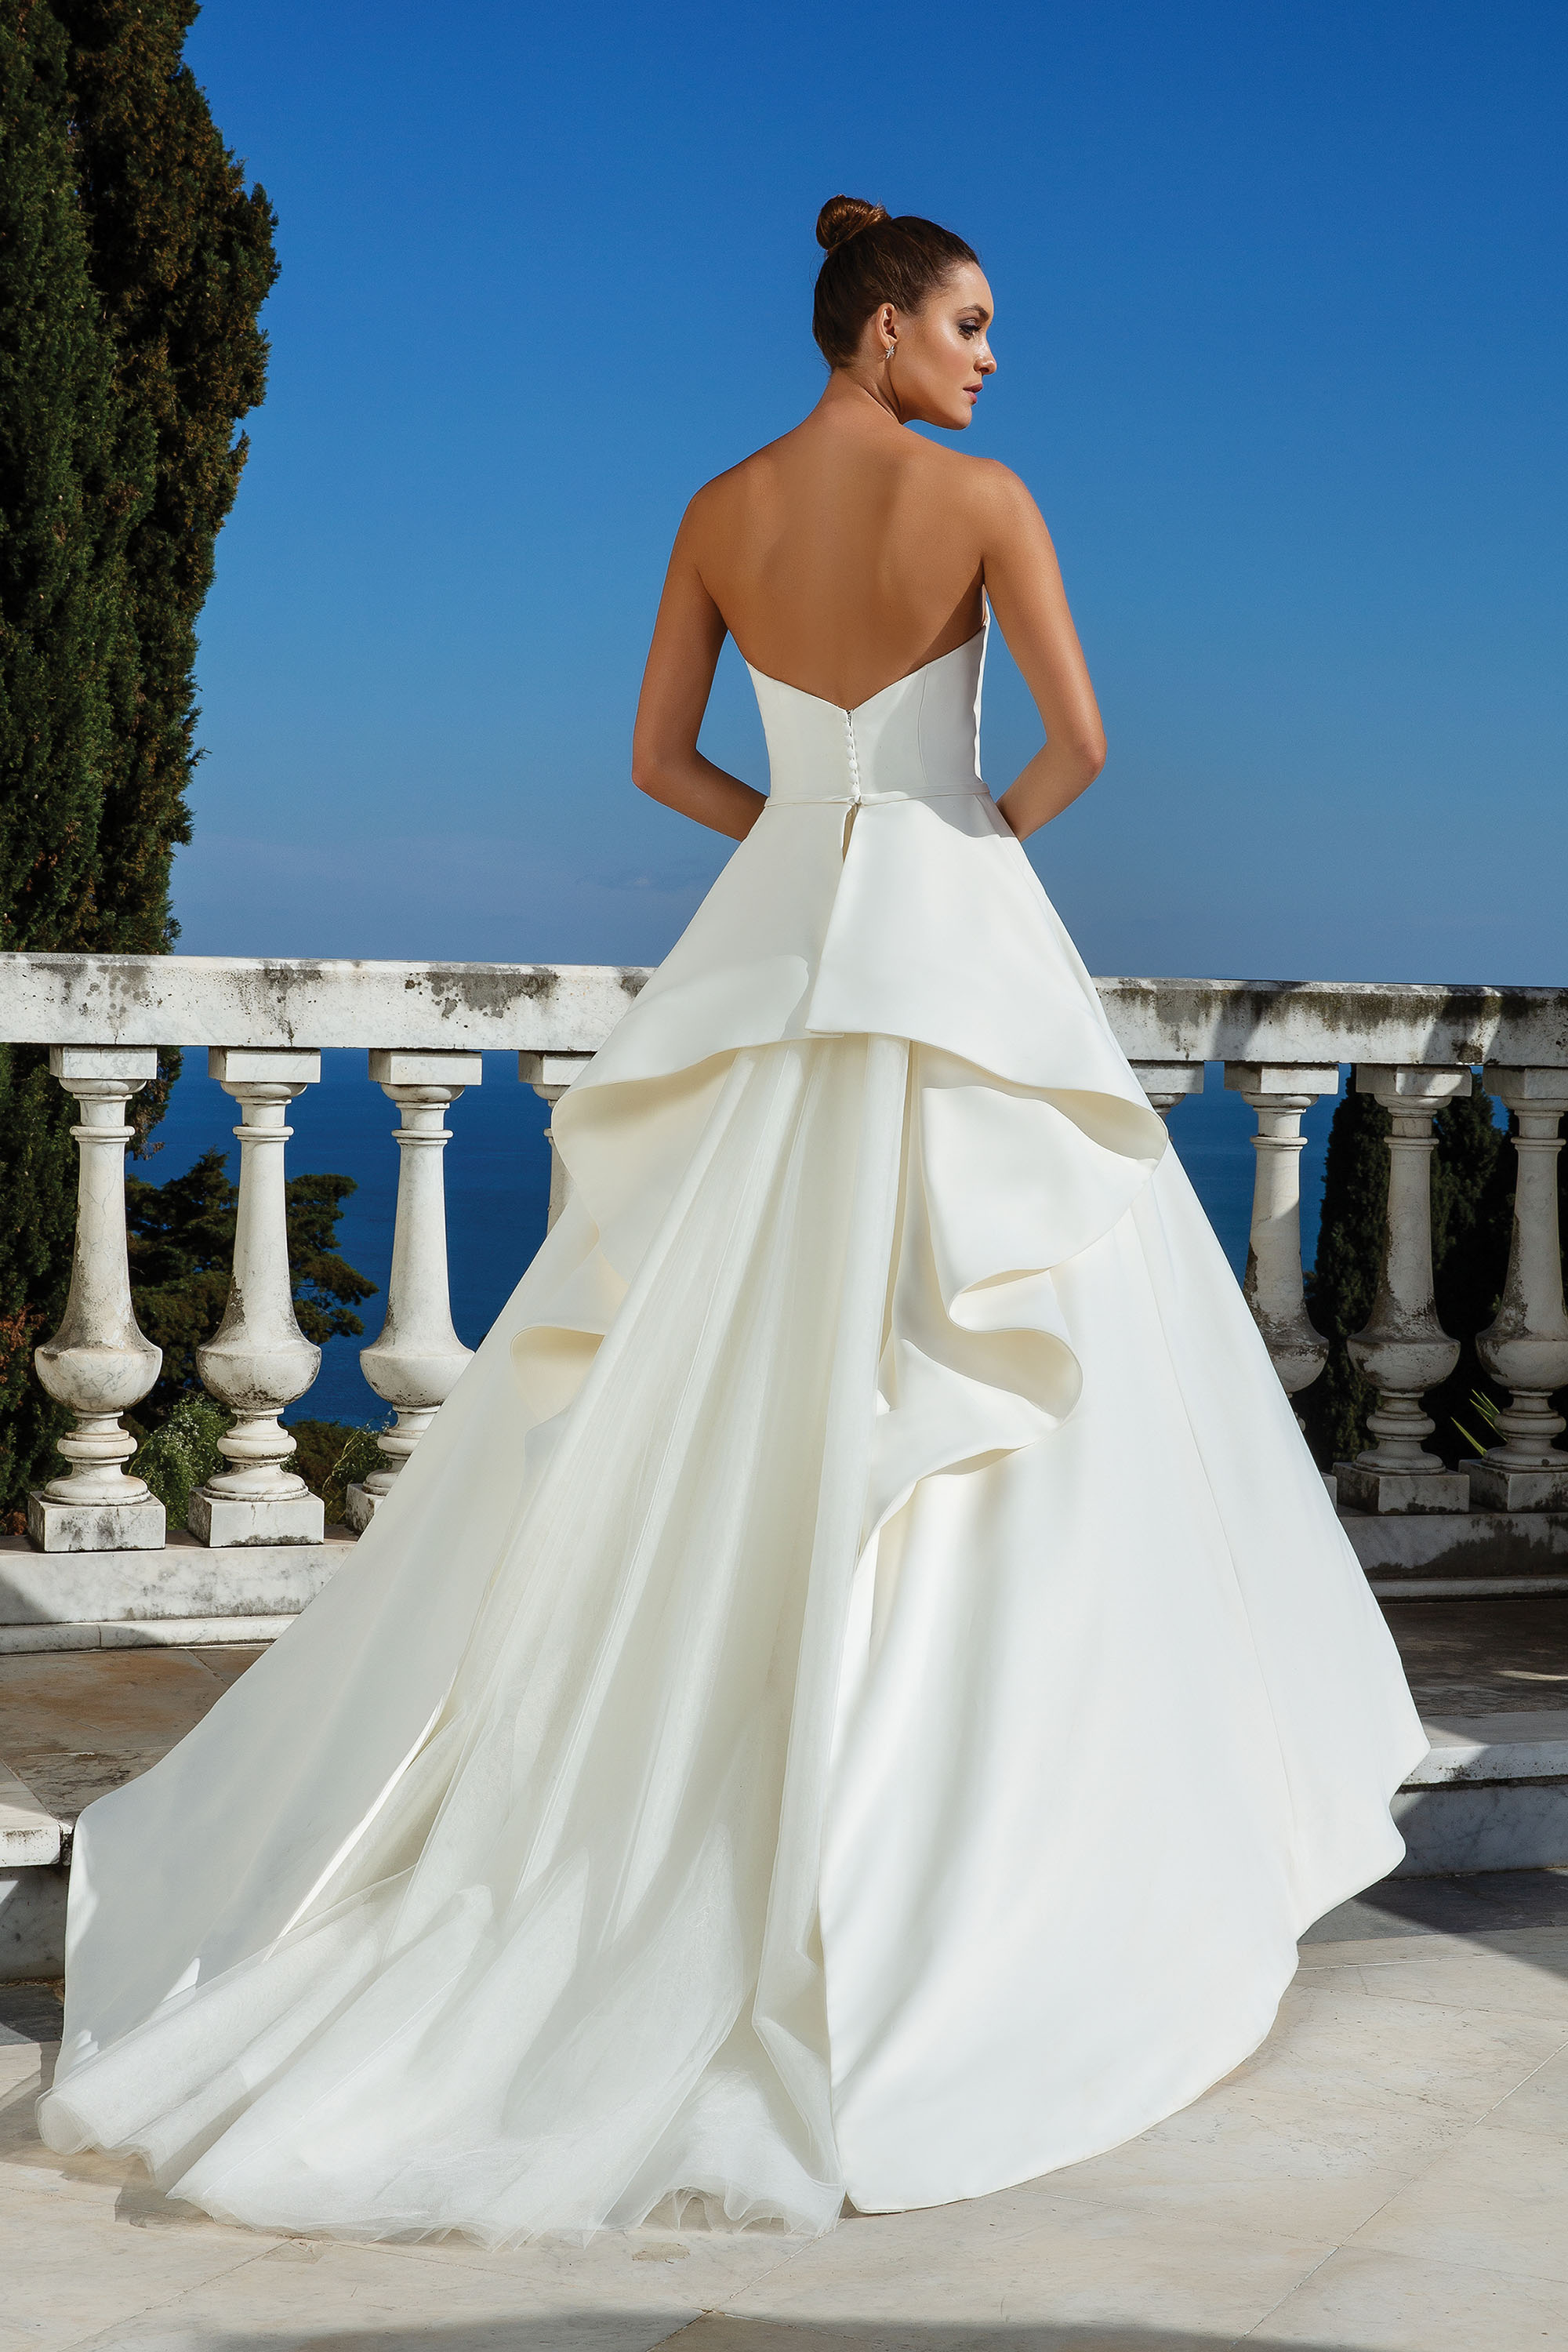 Back details of sleeveless, ball gown wedding dress